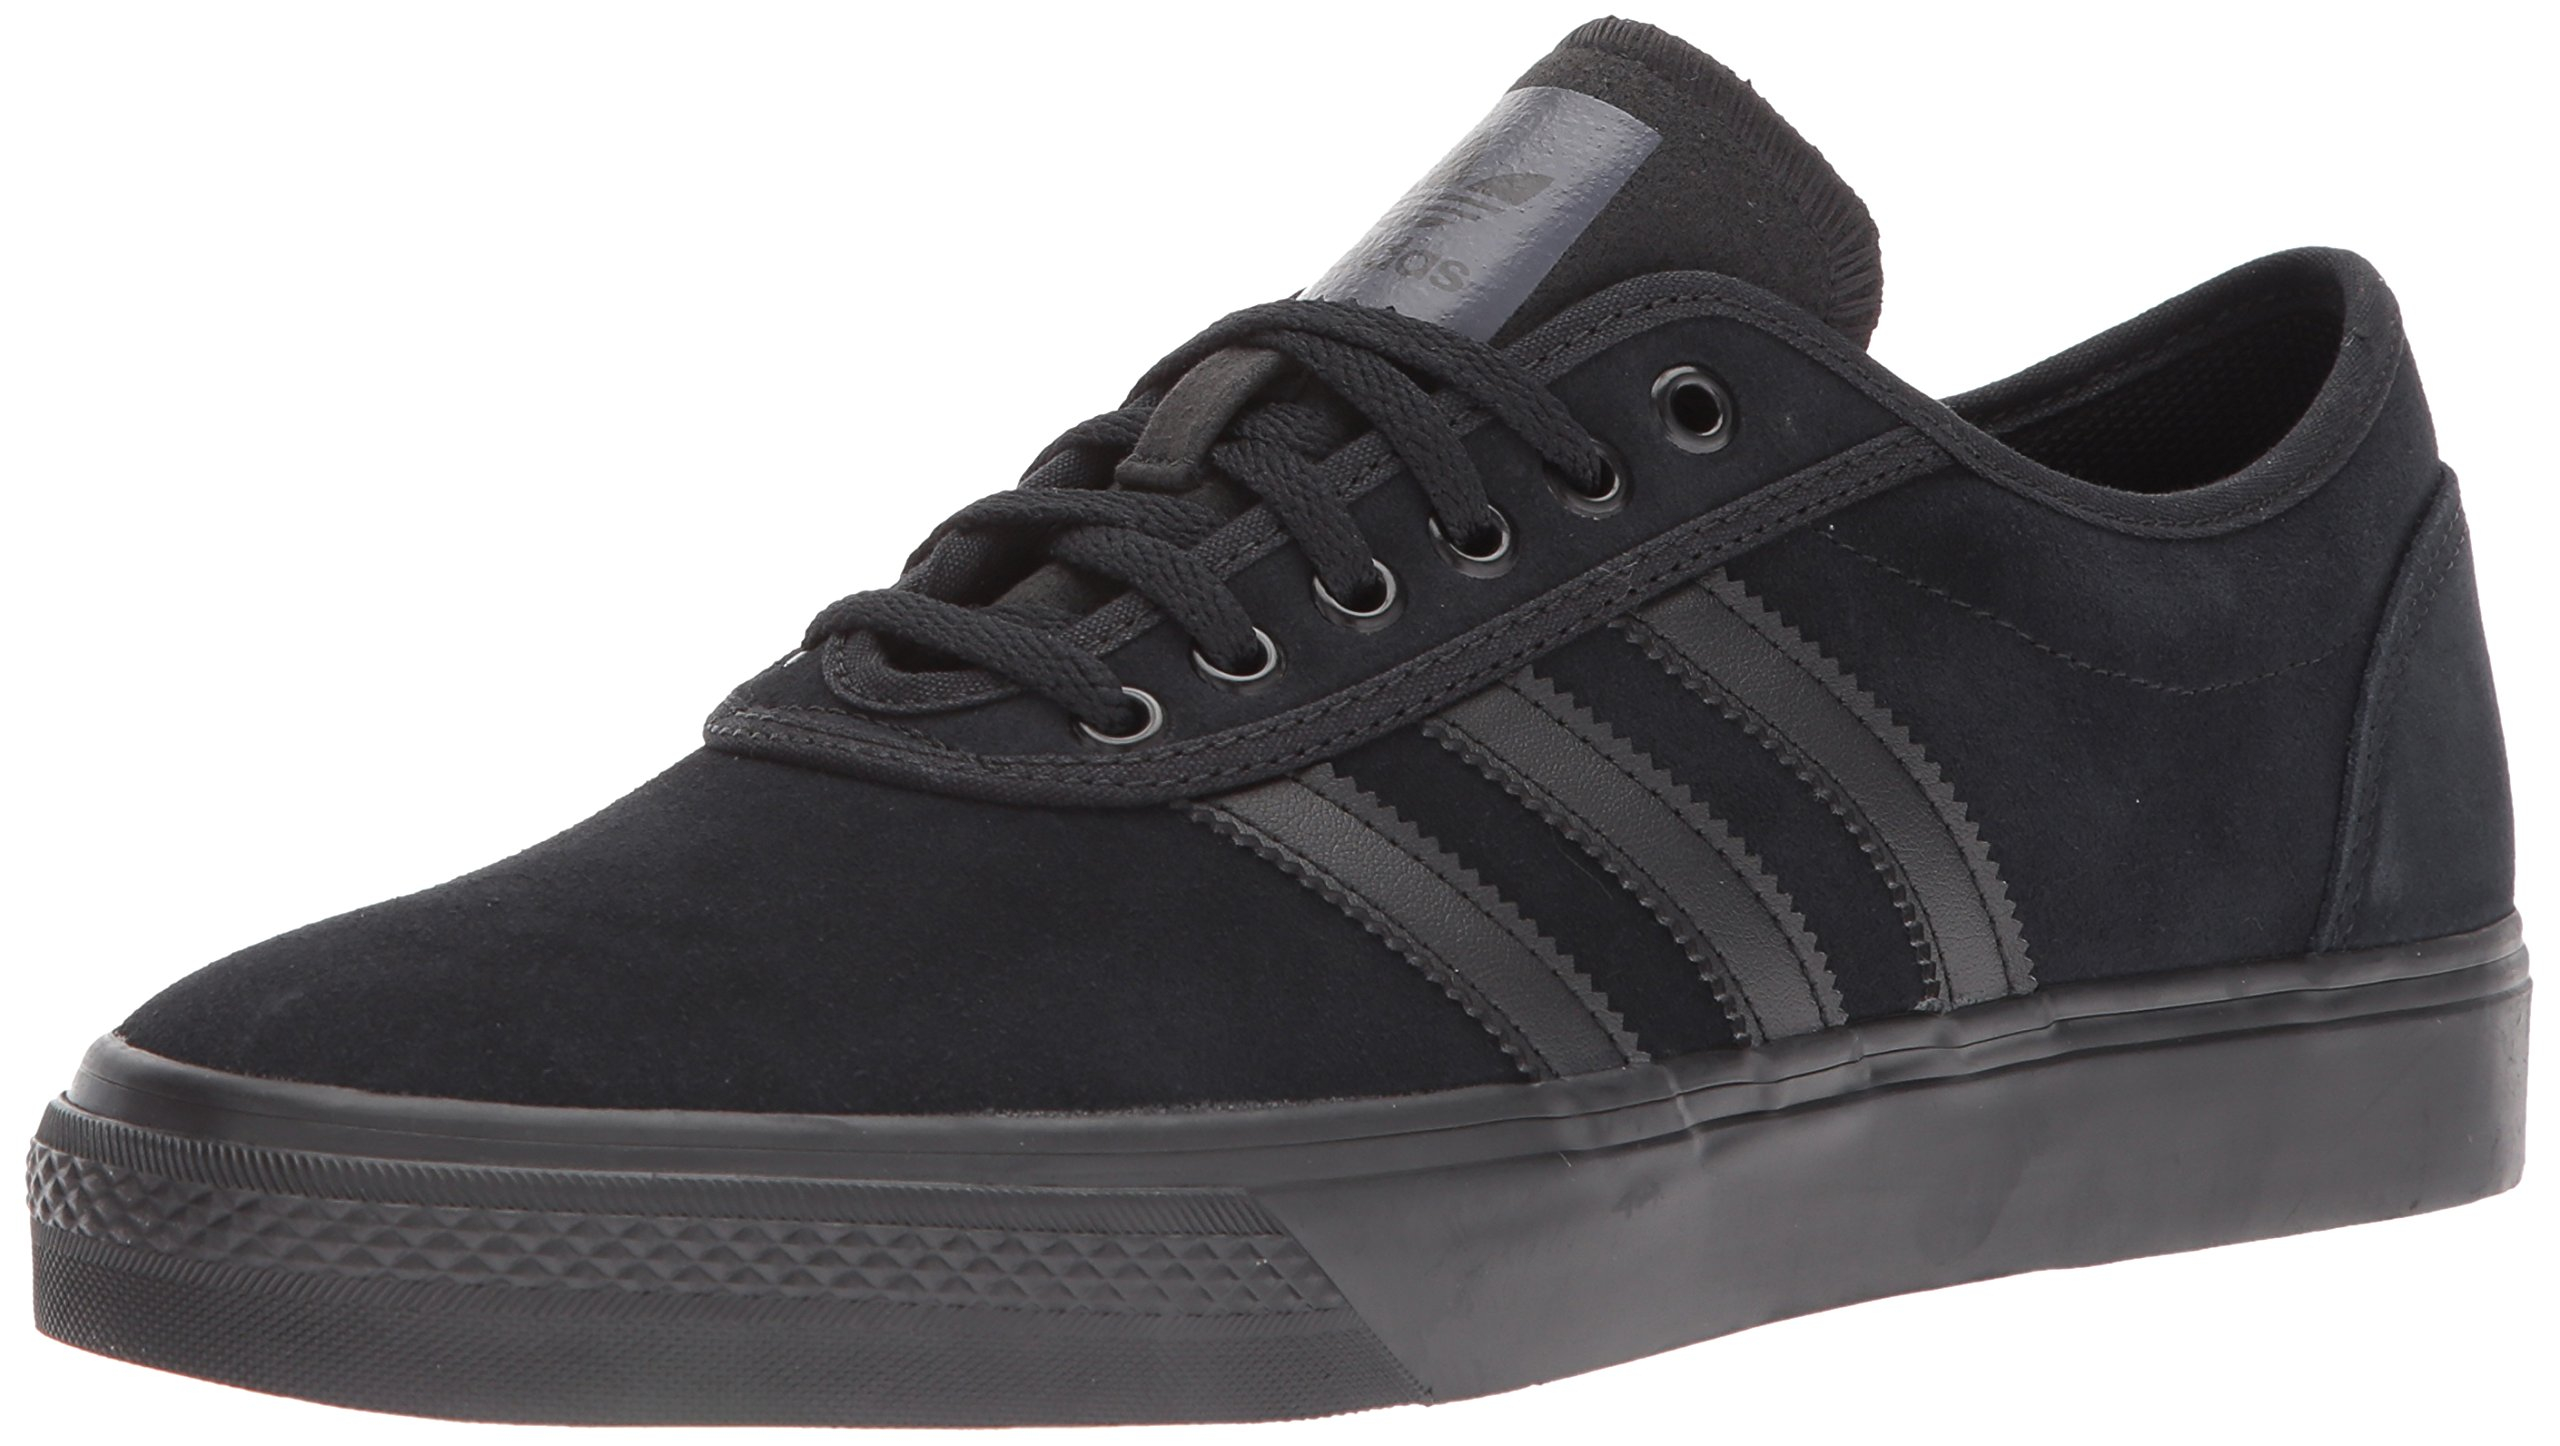 adidas Originals Men's adi-Ease Skate Shoe Black, 4 M US by adidas Originals (Image #1)